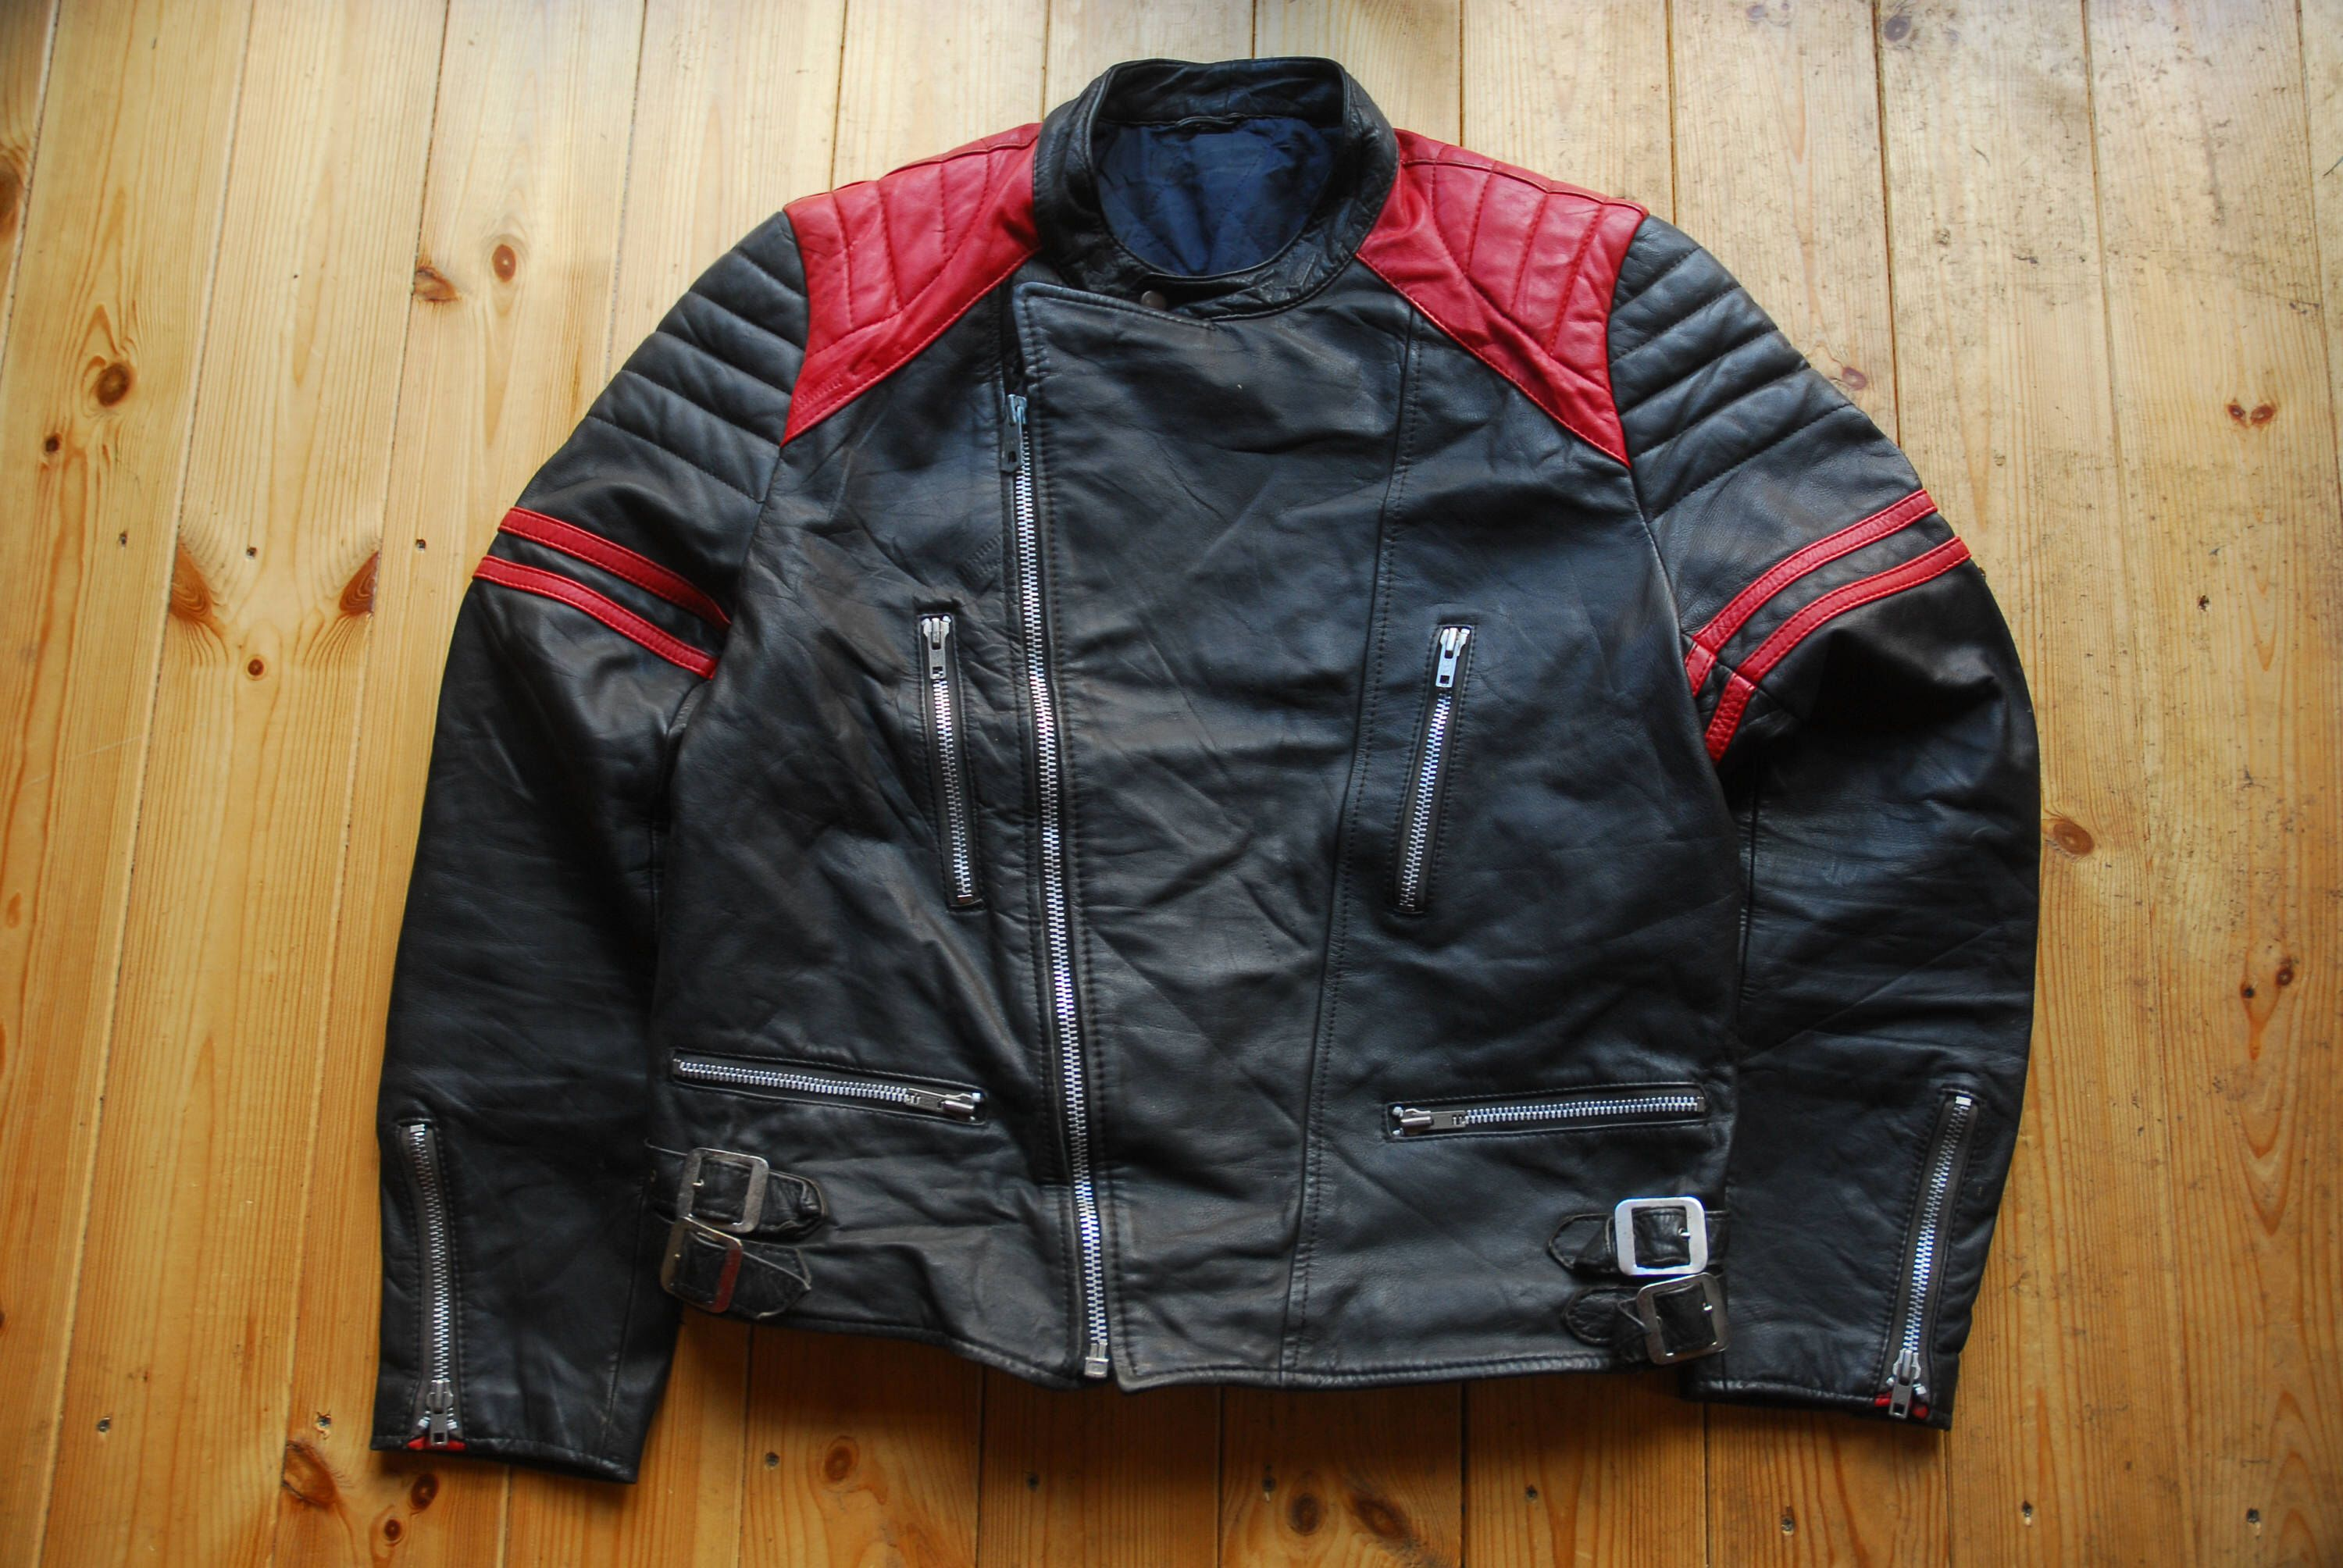 Your Place To Buy And Sell All Things Handmade European Fashion Vintage Leather Jacket Jackets